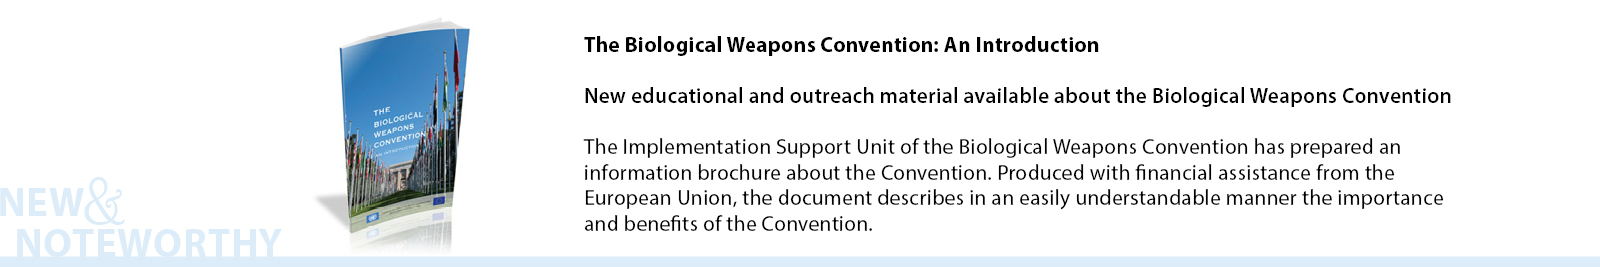 The Biological Weapons Convention: An Introduction - The Implementation Support Unit of the Biological Weapons Convention has prepared an information brochure about the Convention. Produced with financial assistance from the European Union, the document describes in an easily understandable manner the importance and benefits of the Convention.